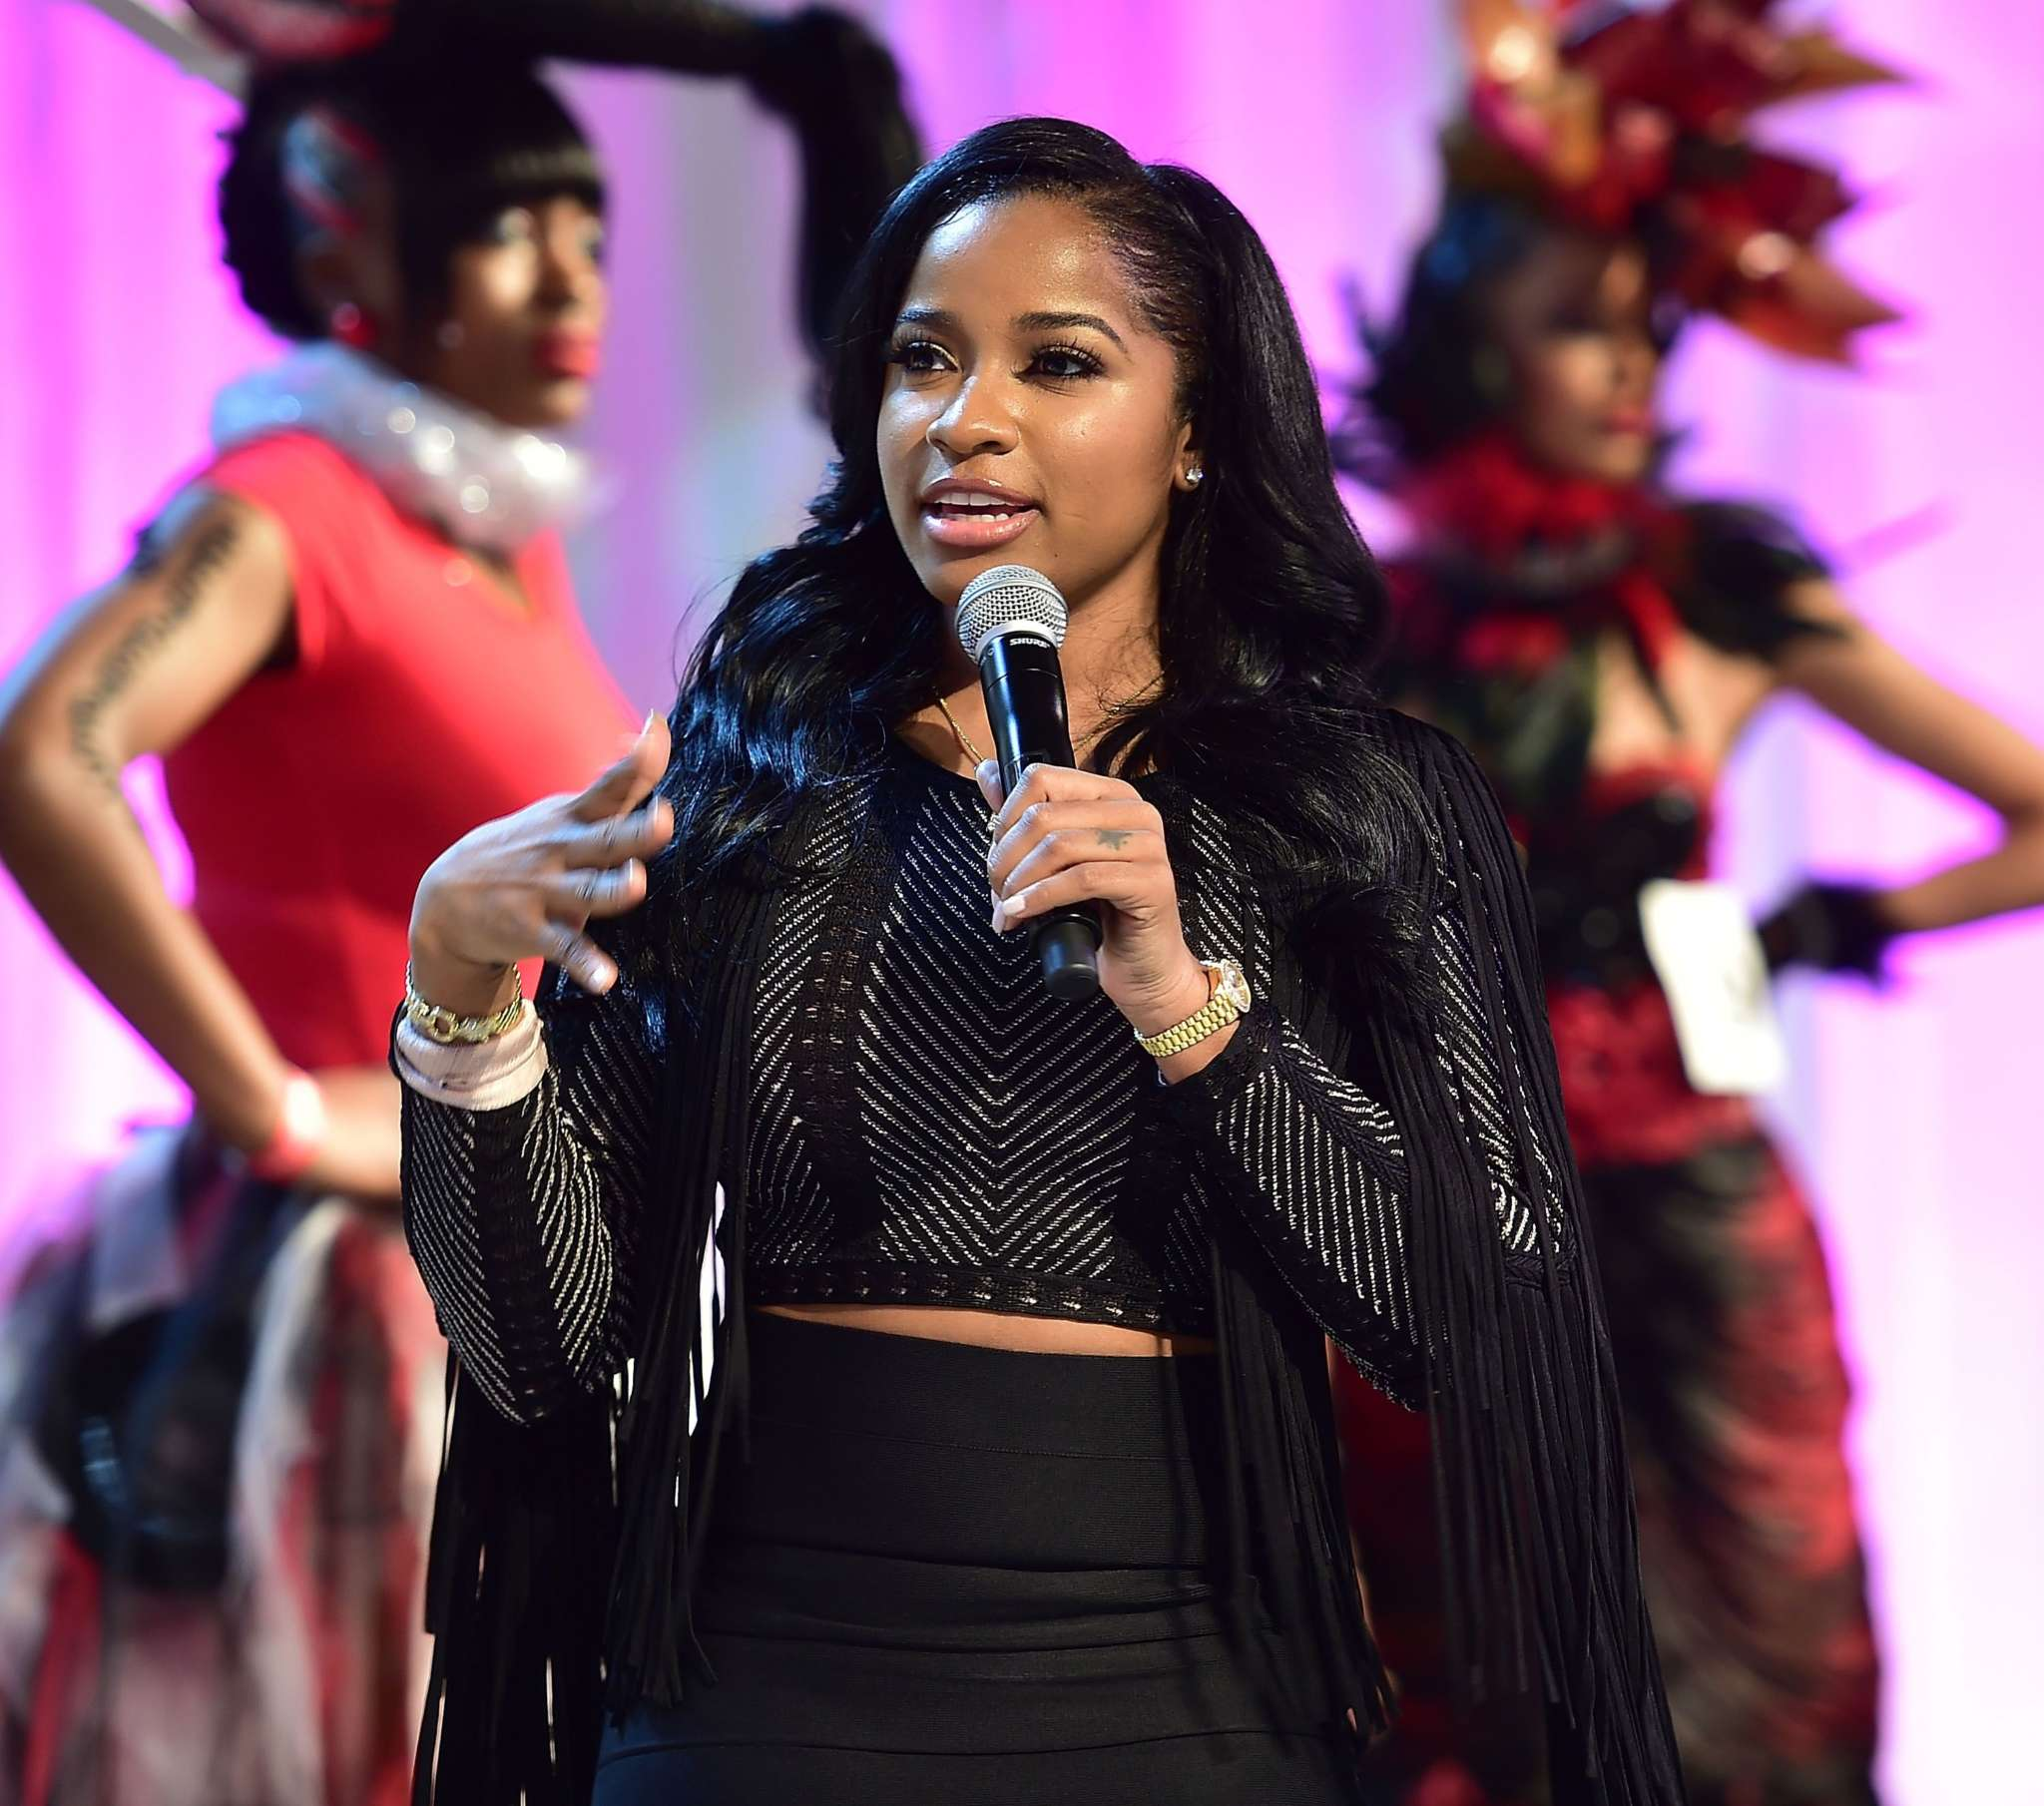 Toya Johnson's First Double Dutch Competition Was A Huge Success!